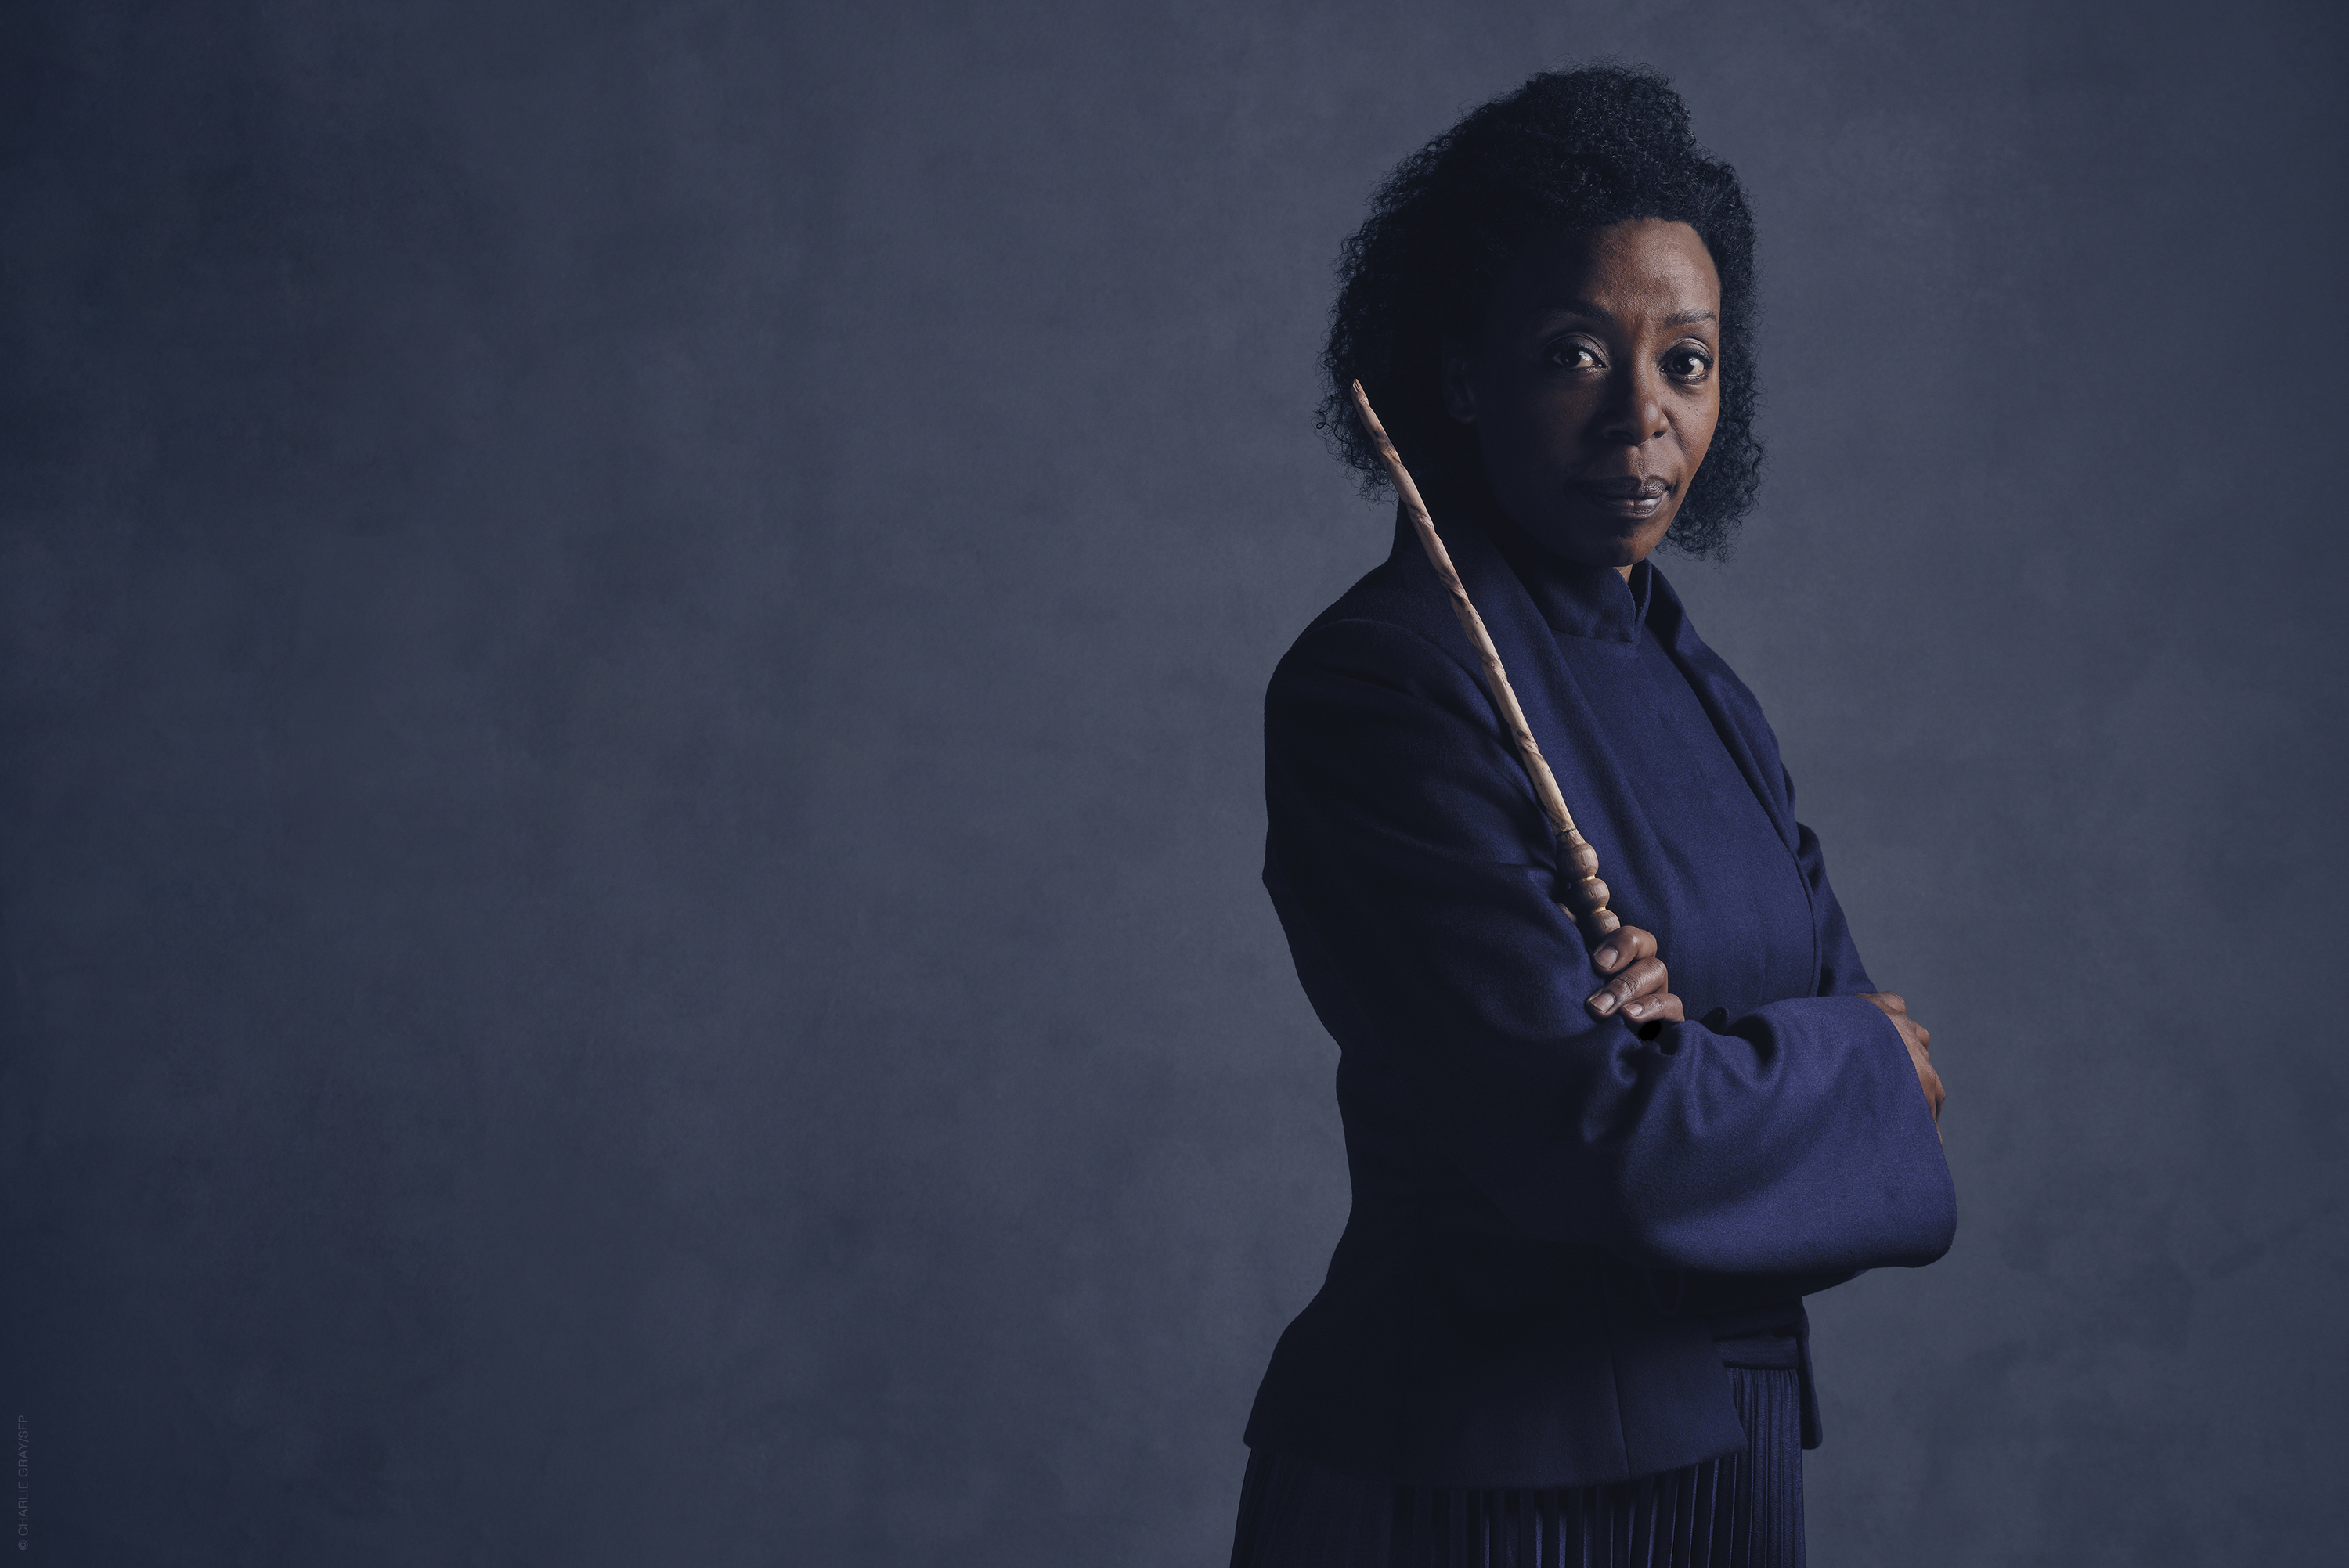 Harry Potter and the Cursed Child: all you need to know